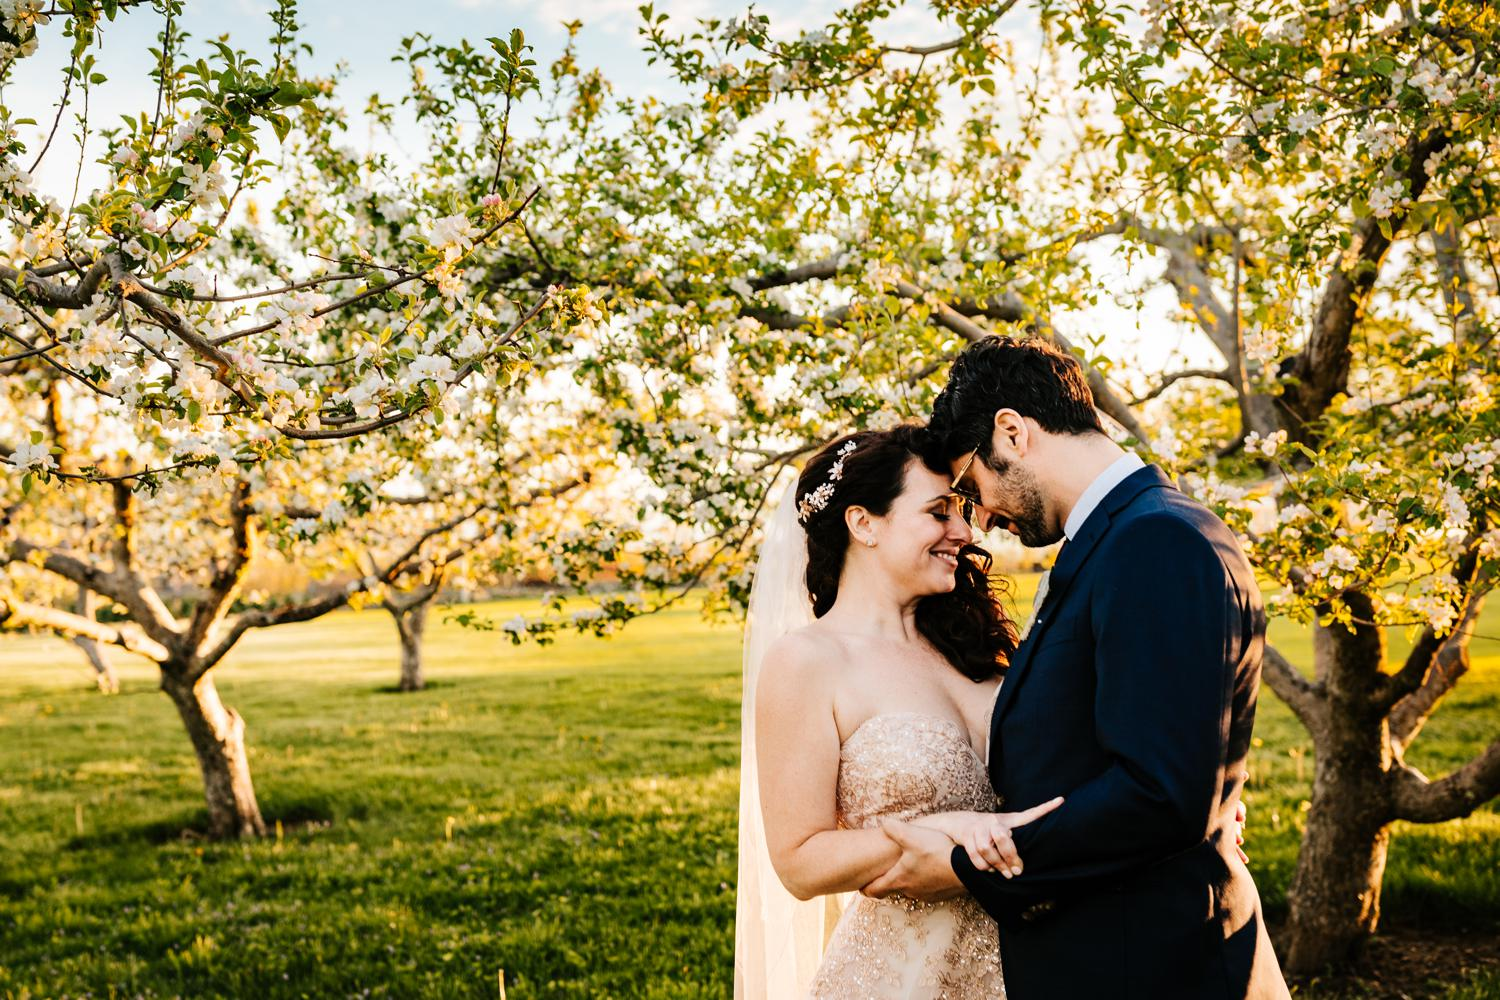 Intimate bride and groom in tree blossoms in El Paso